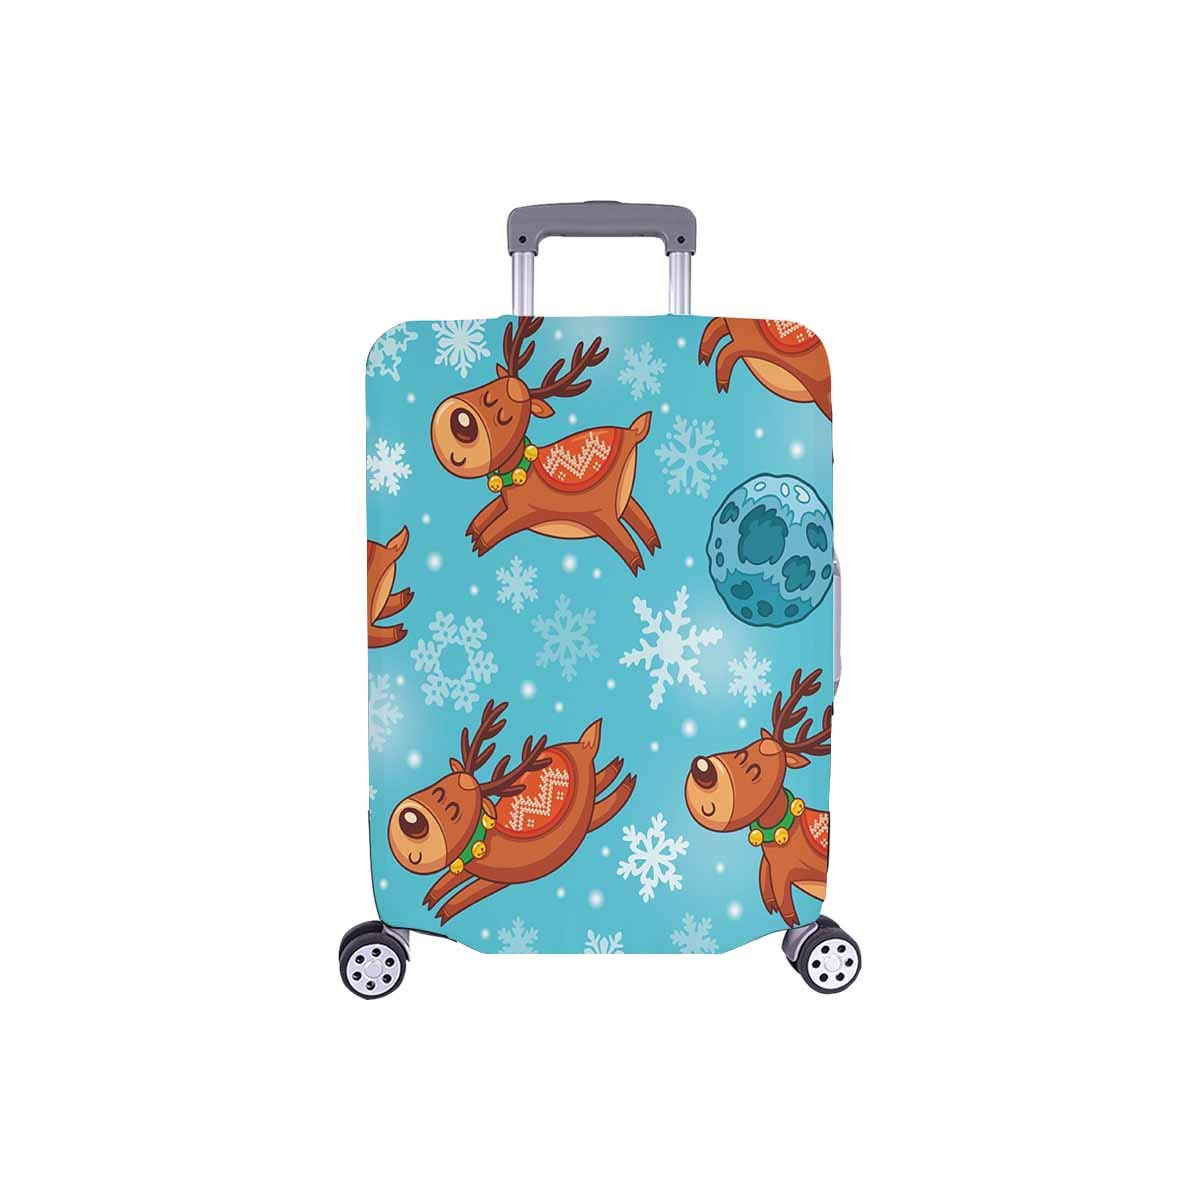 InterestPrint Luggage Protectors Cute Suitcase Covers Funny Deers Characters and Snowflakes Fit 18-21 Inch Luggage